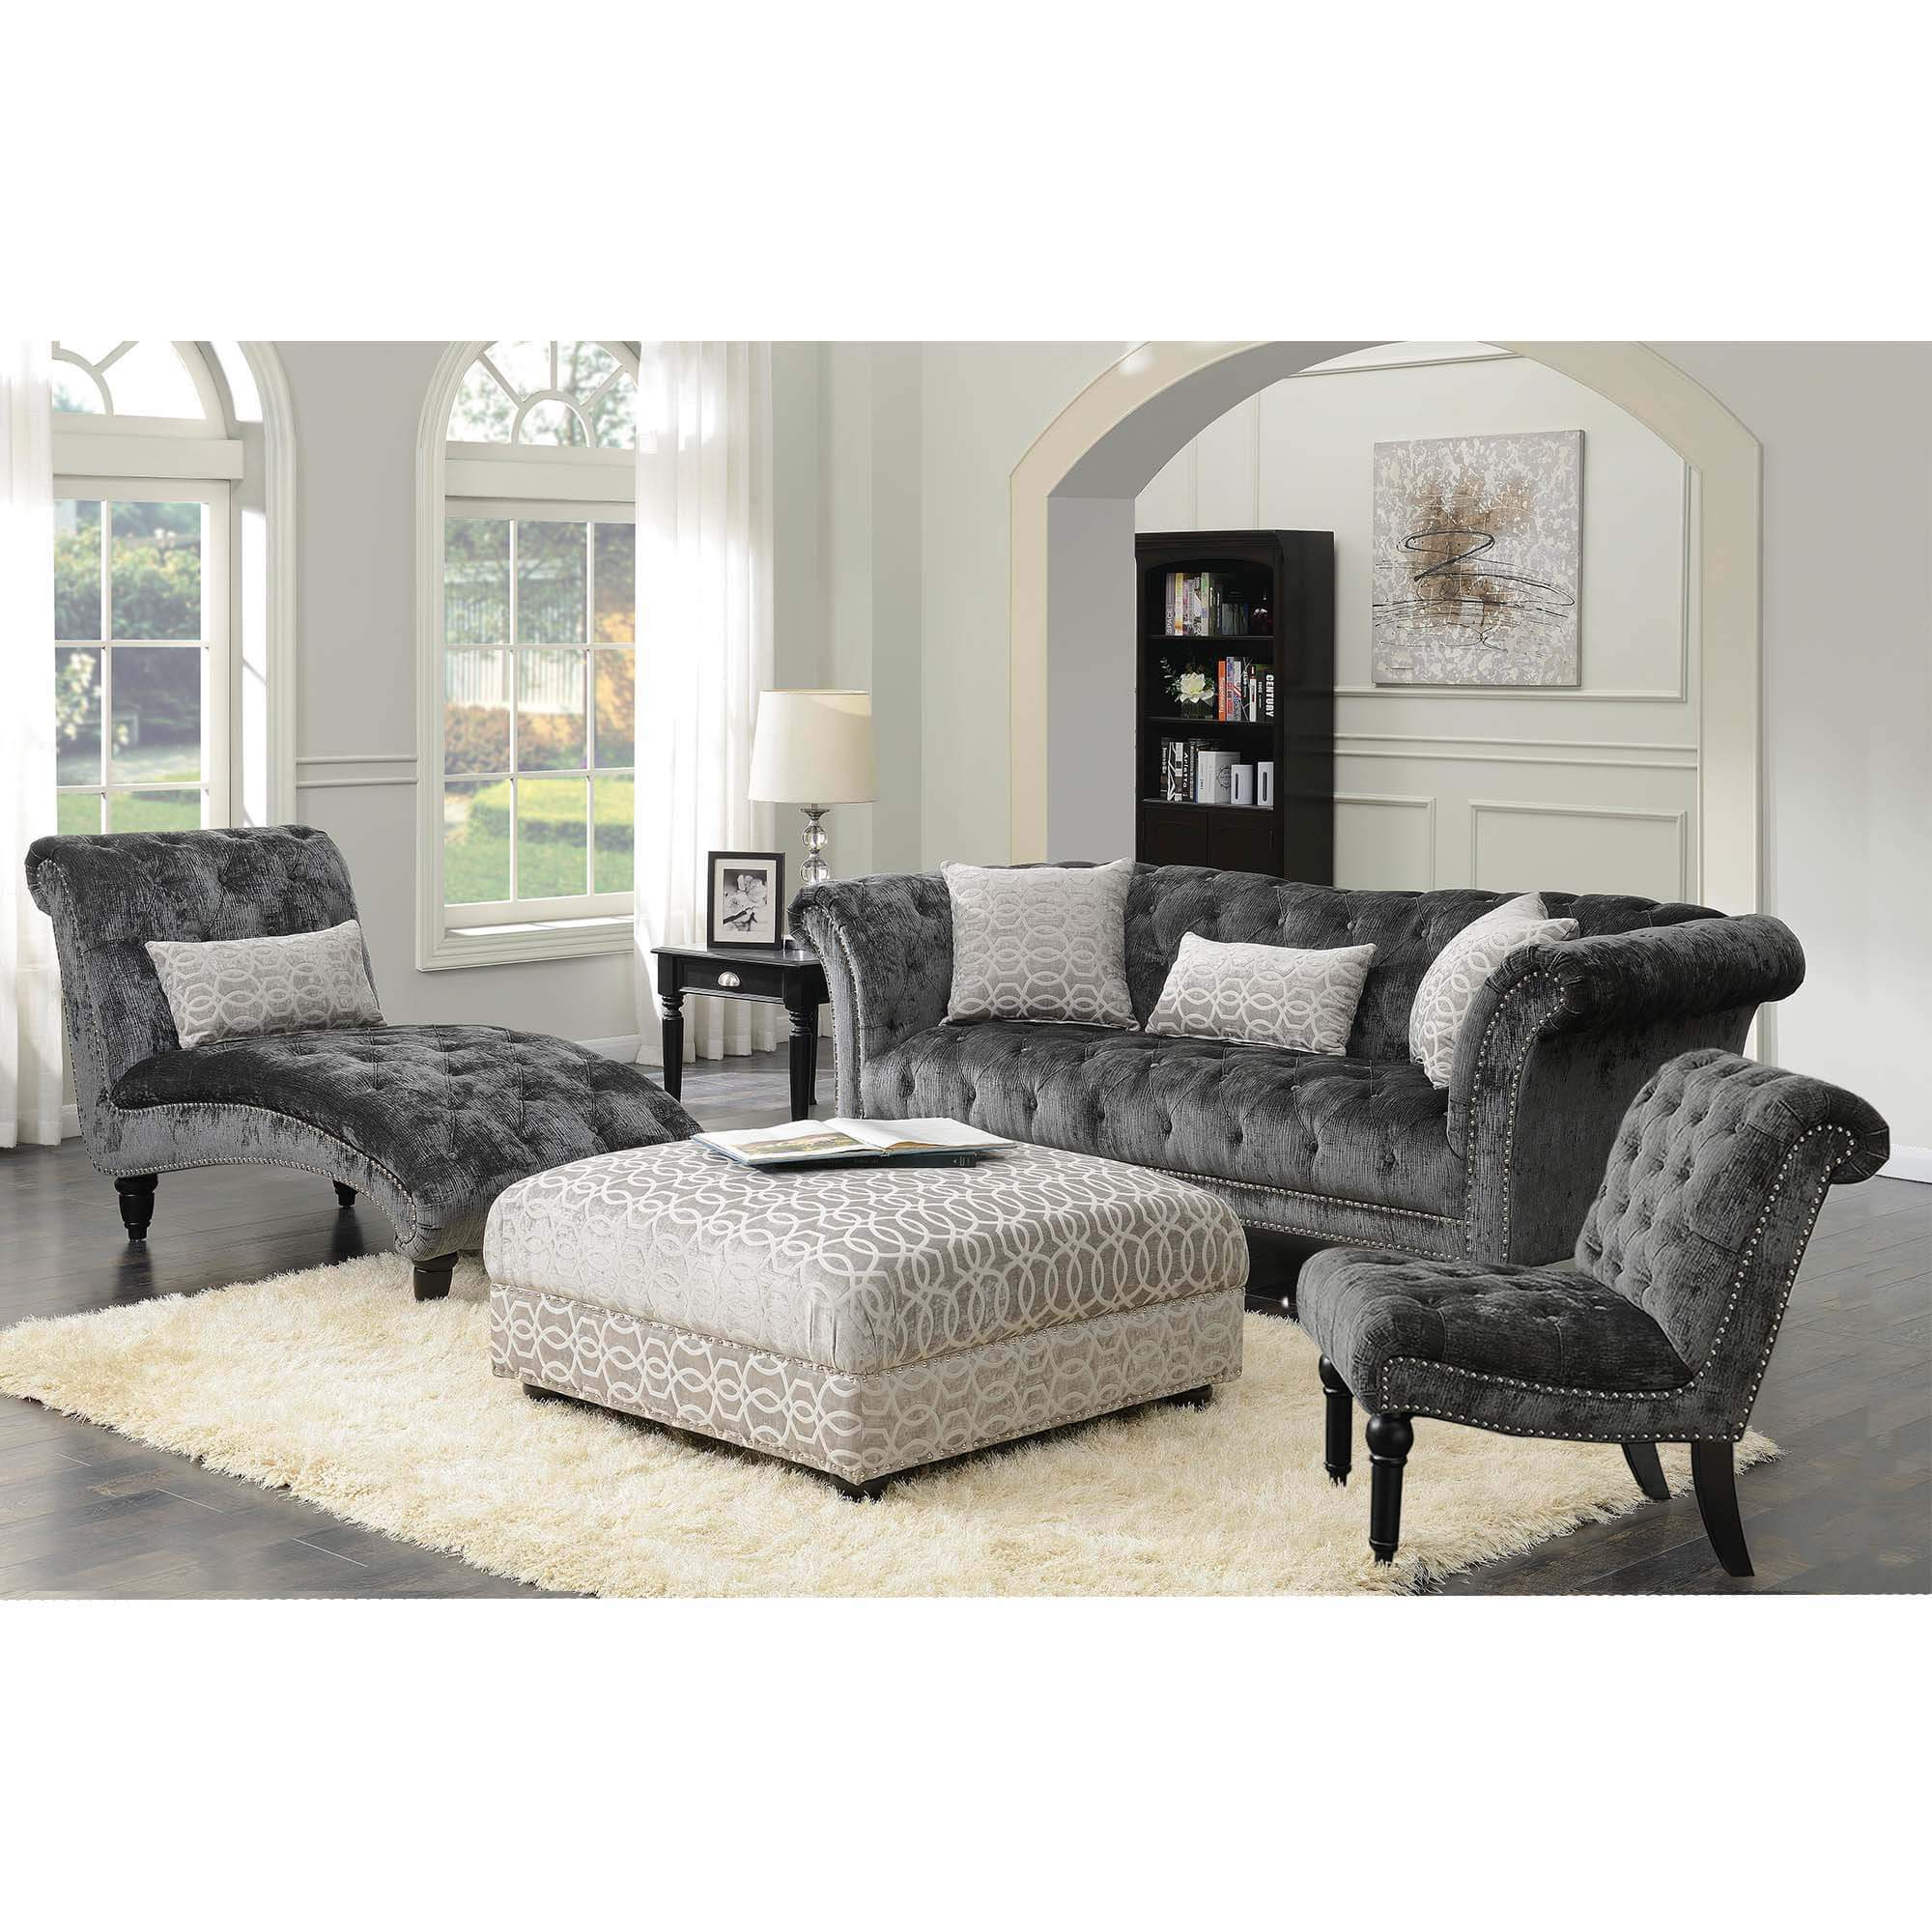 Room Furniture Living Room Furniture Urban Furniture Outlet Delaware